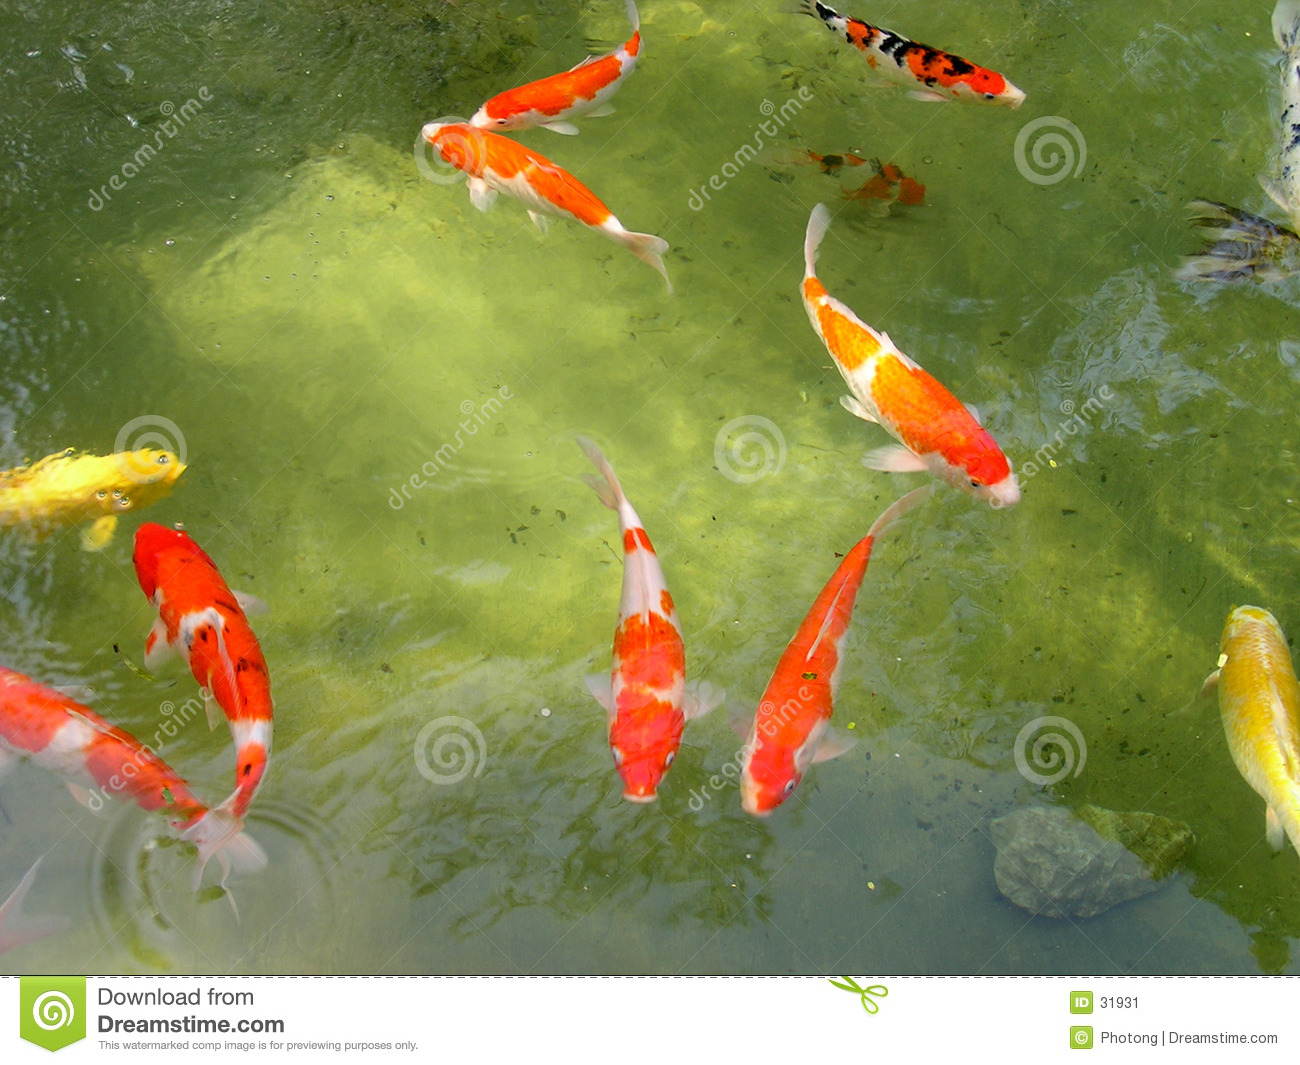 Koi fish pond stock image image 31931 for Koi fish images